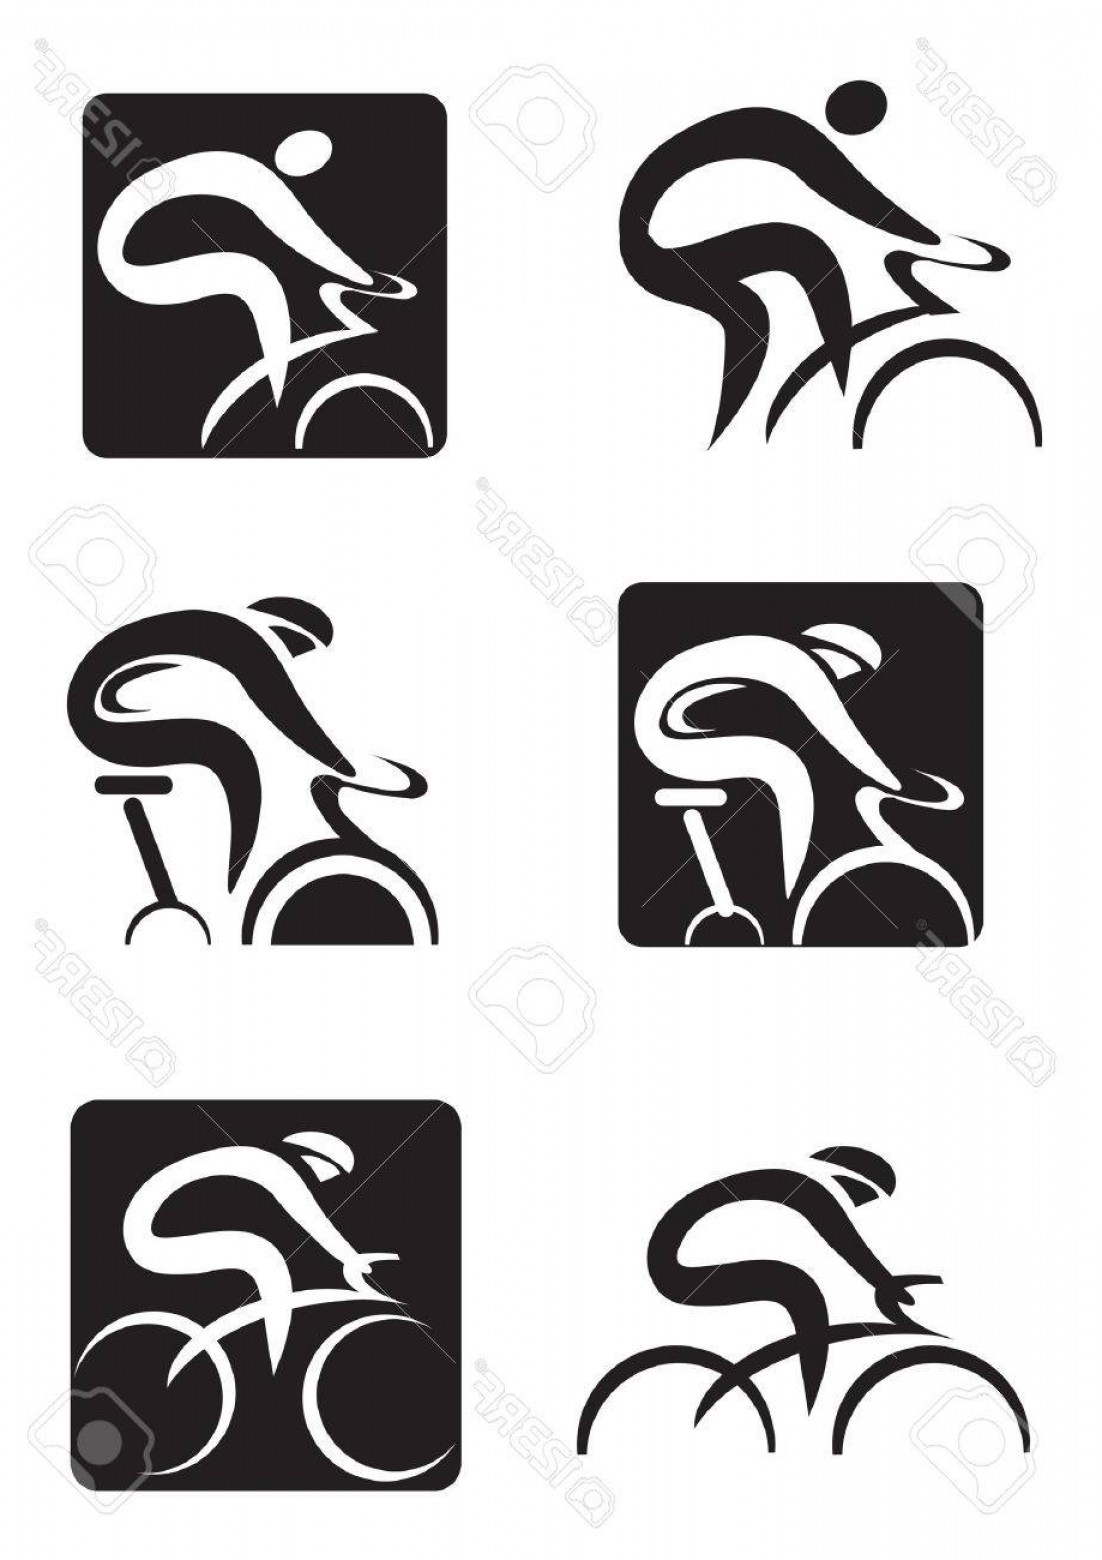 Indoor Cycling Bike Vector: Photostock Vector Set Of Black Icons Of Spinning And Cycling Vector Illustration